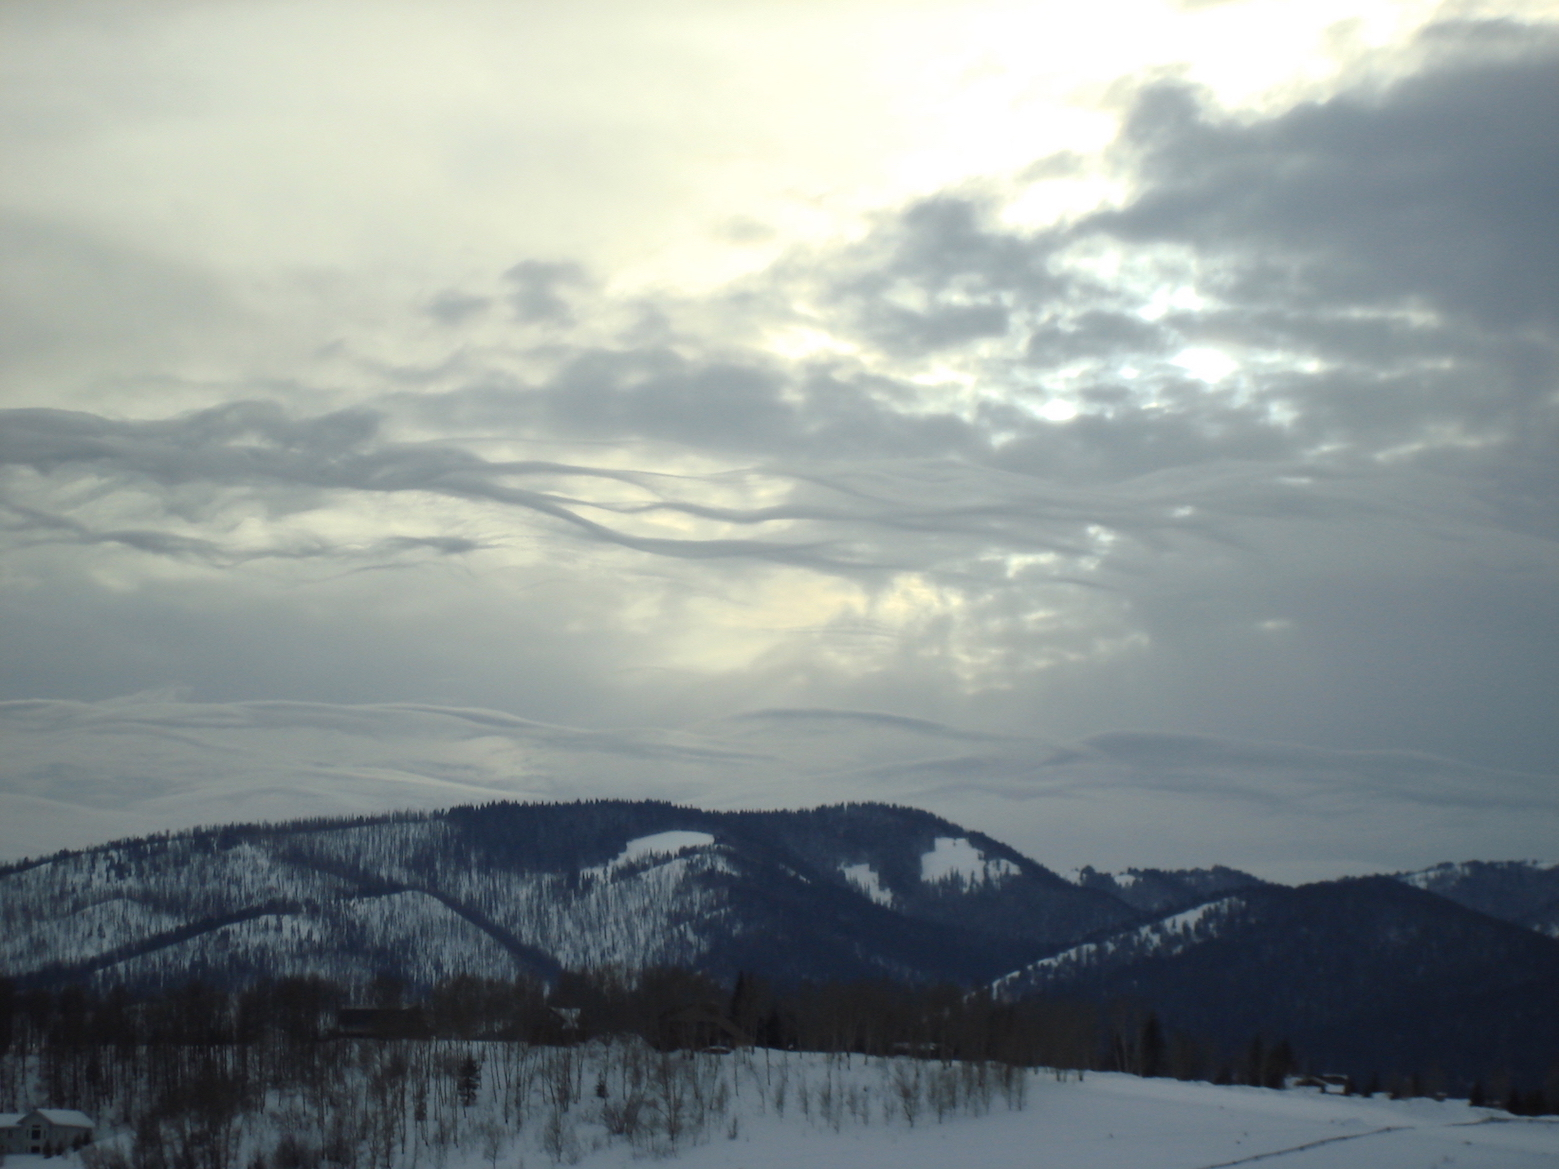 photo: Djclimber;link: https://en.wikipedia.org/wiki/Stratocumulus_cloud#/media/File:Stratocumulus_lenticularis_2.jpg;licence: cc;desc: Stratocumulus lenticularis clouds in Jackson, Wyoming, USA.;